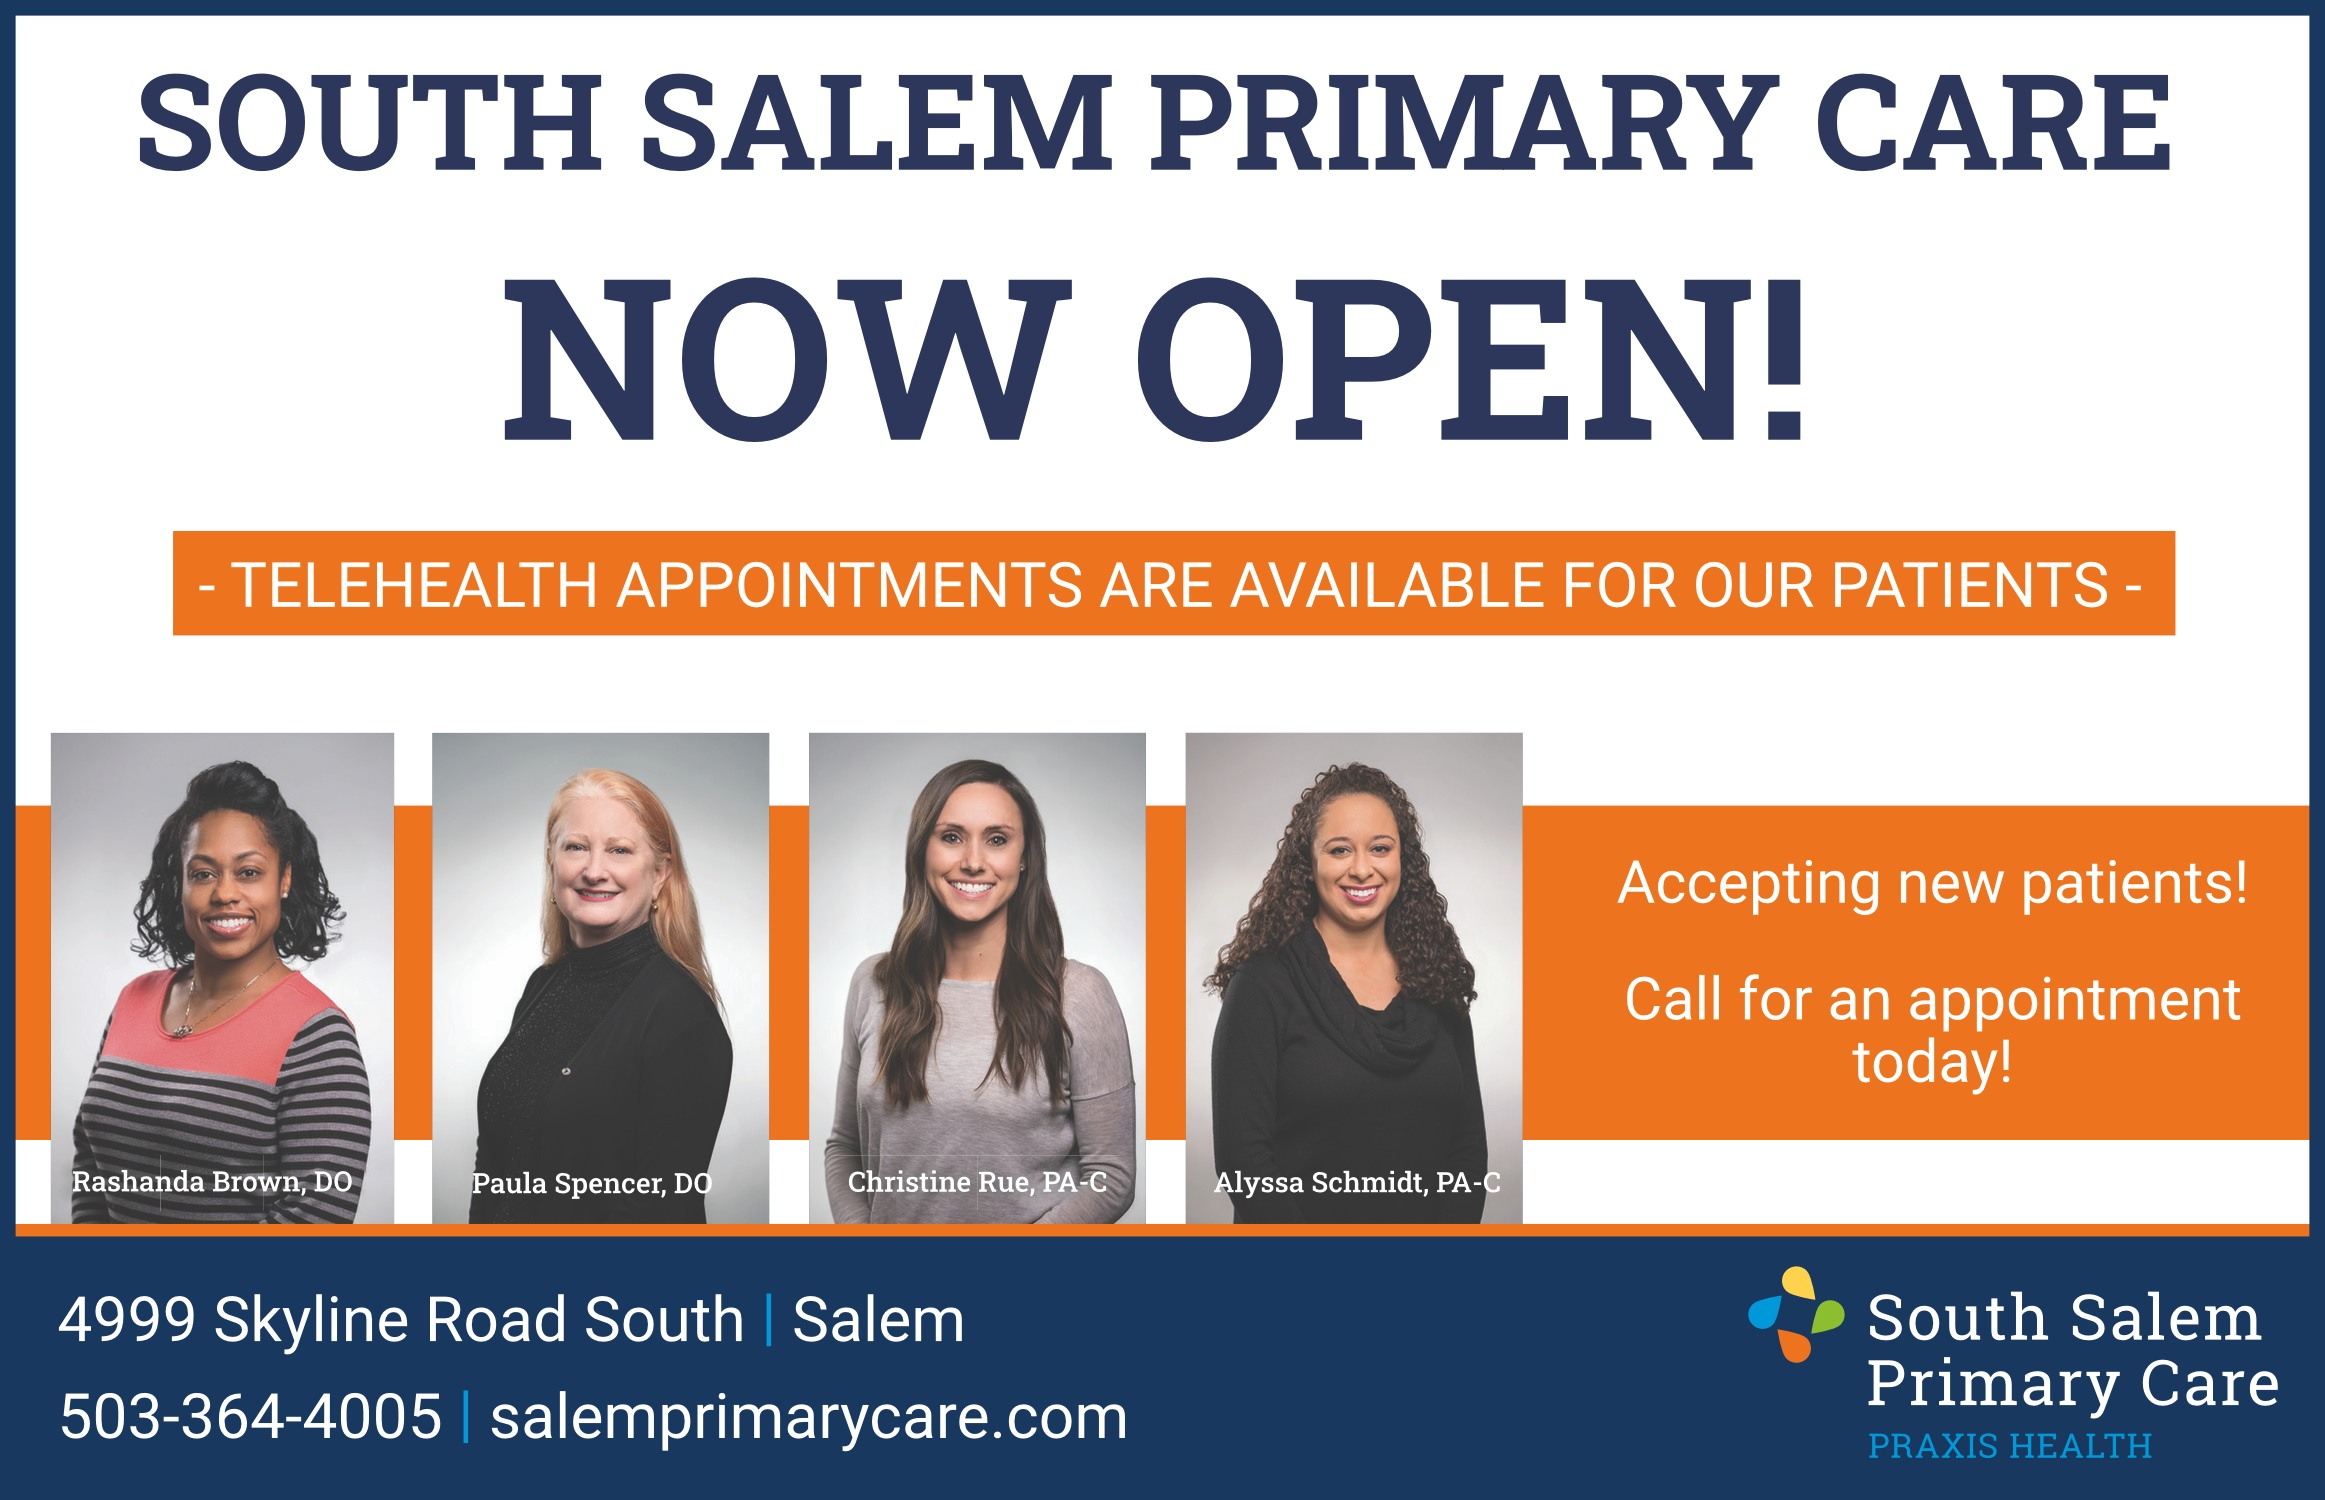 South Salem Primary Carenew